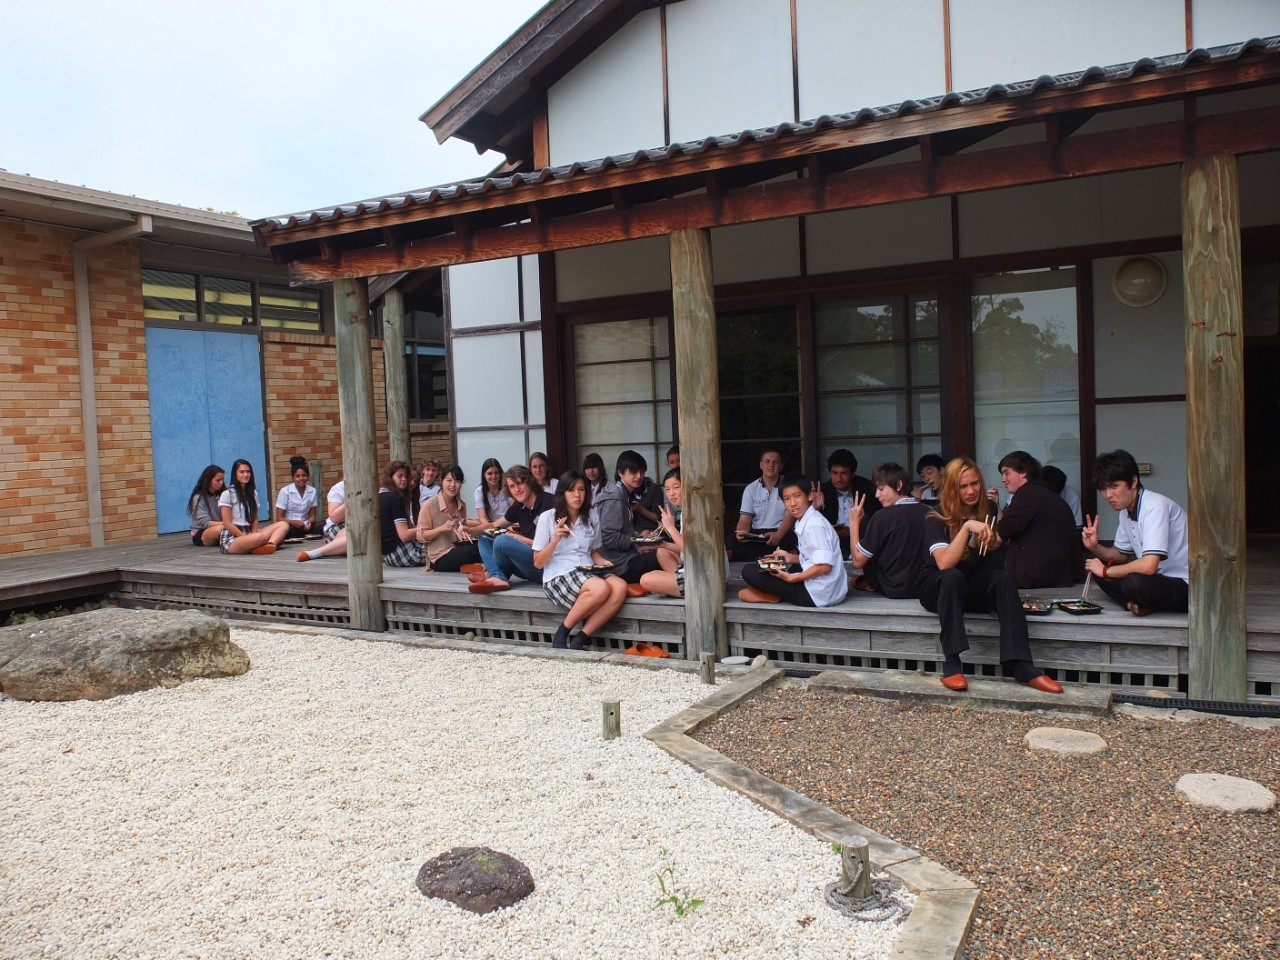 Some of our language students enjoying a zen garden.